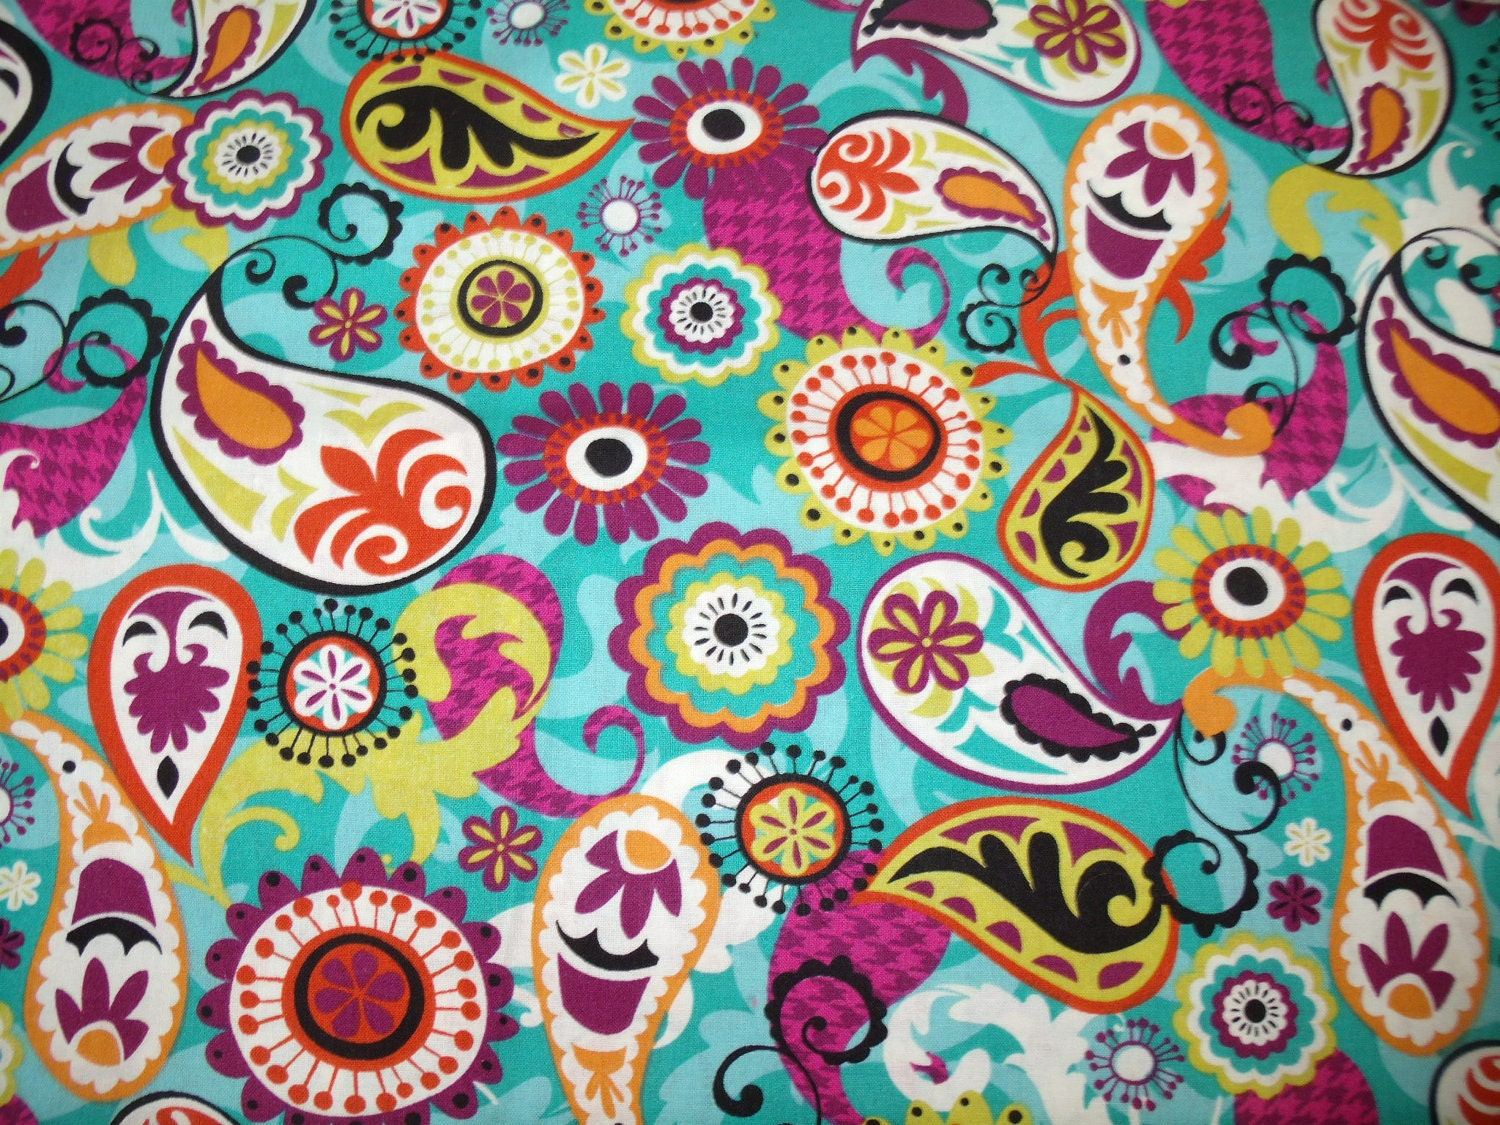 Retro paisley print fabric by the yard quilting designer for Fabric printing